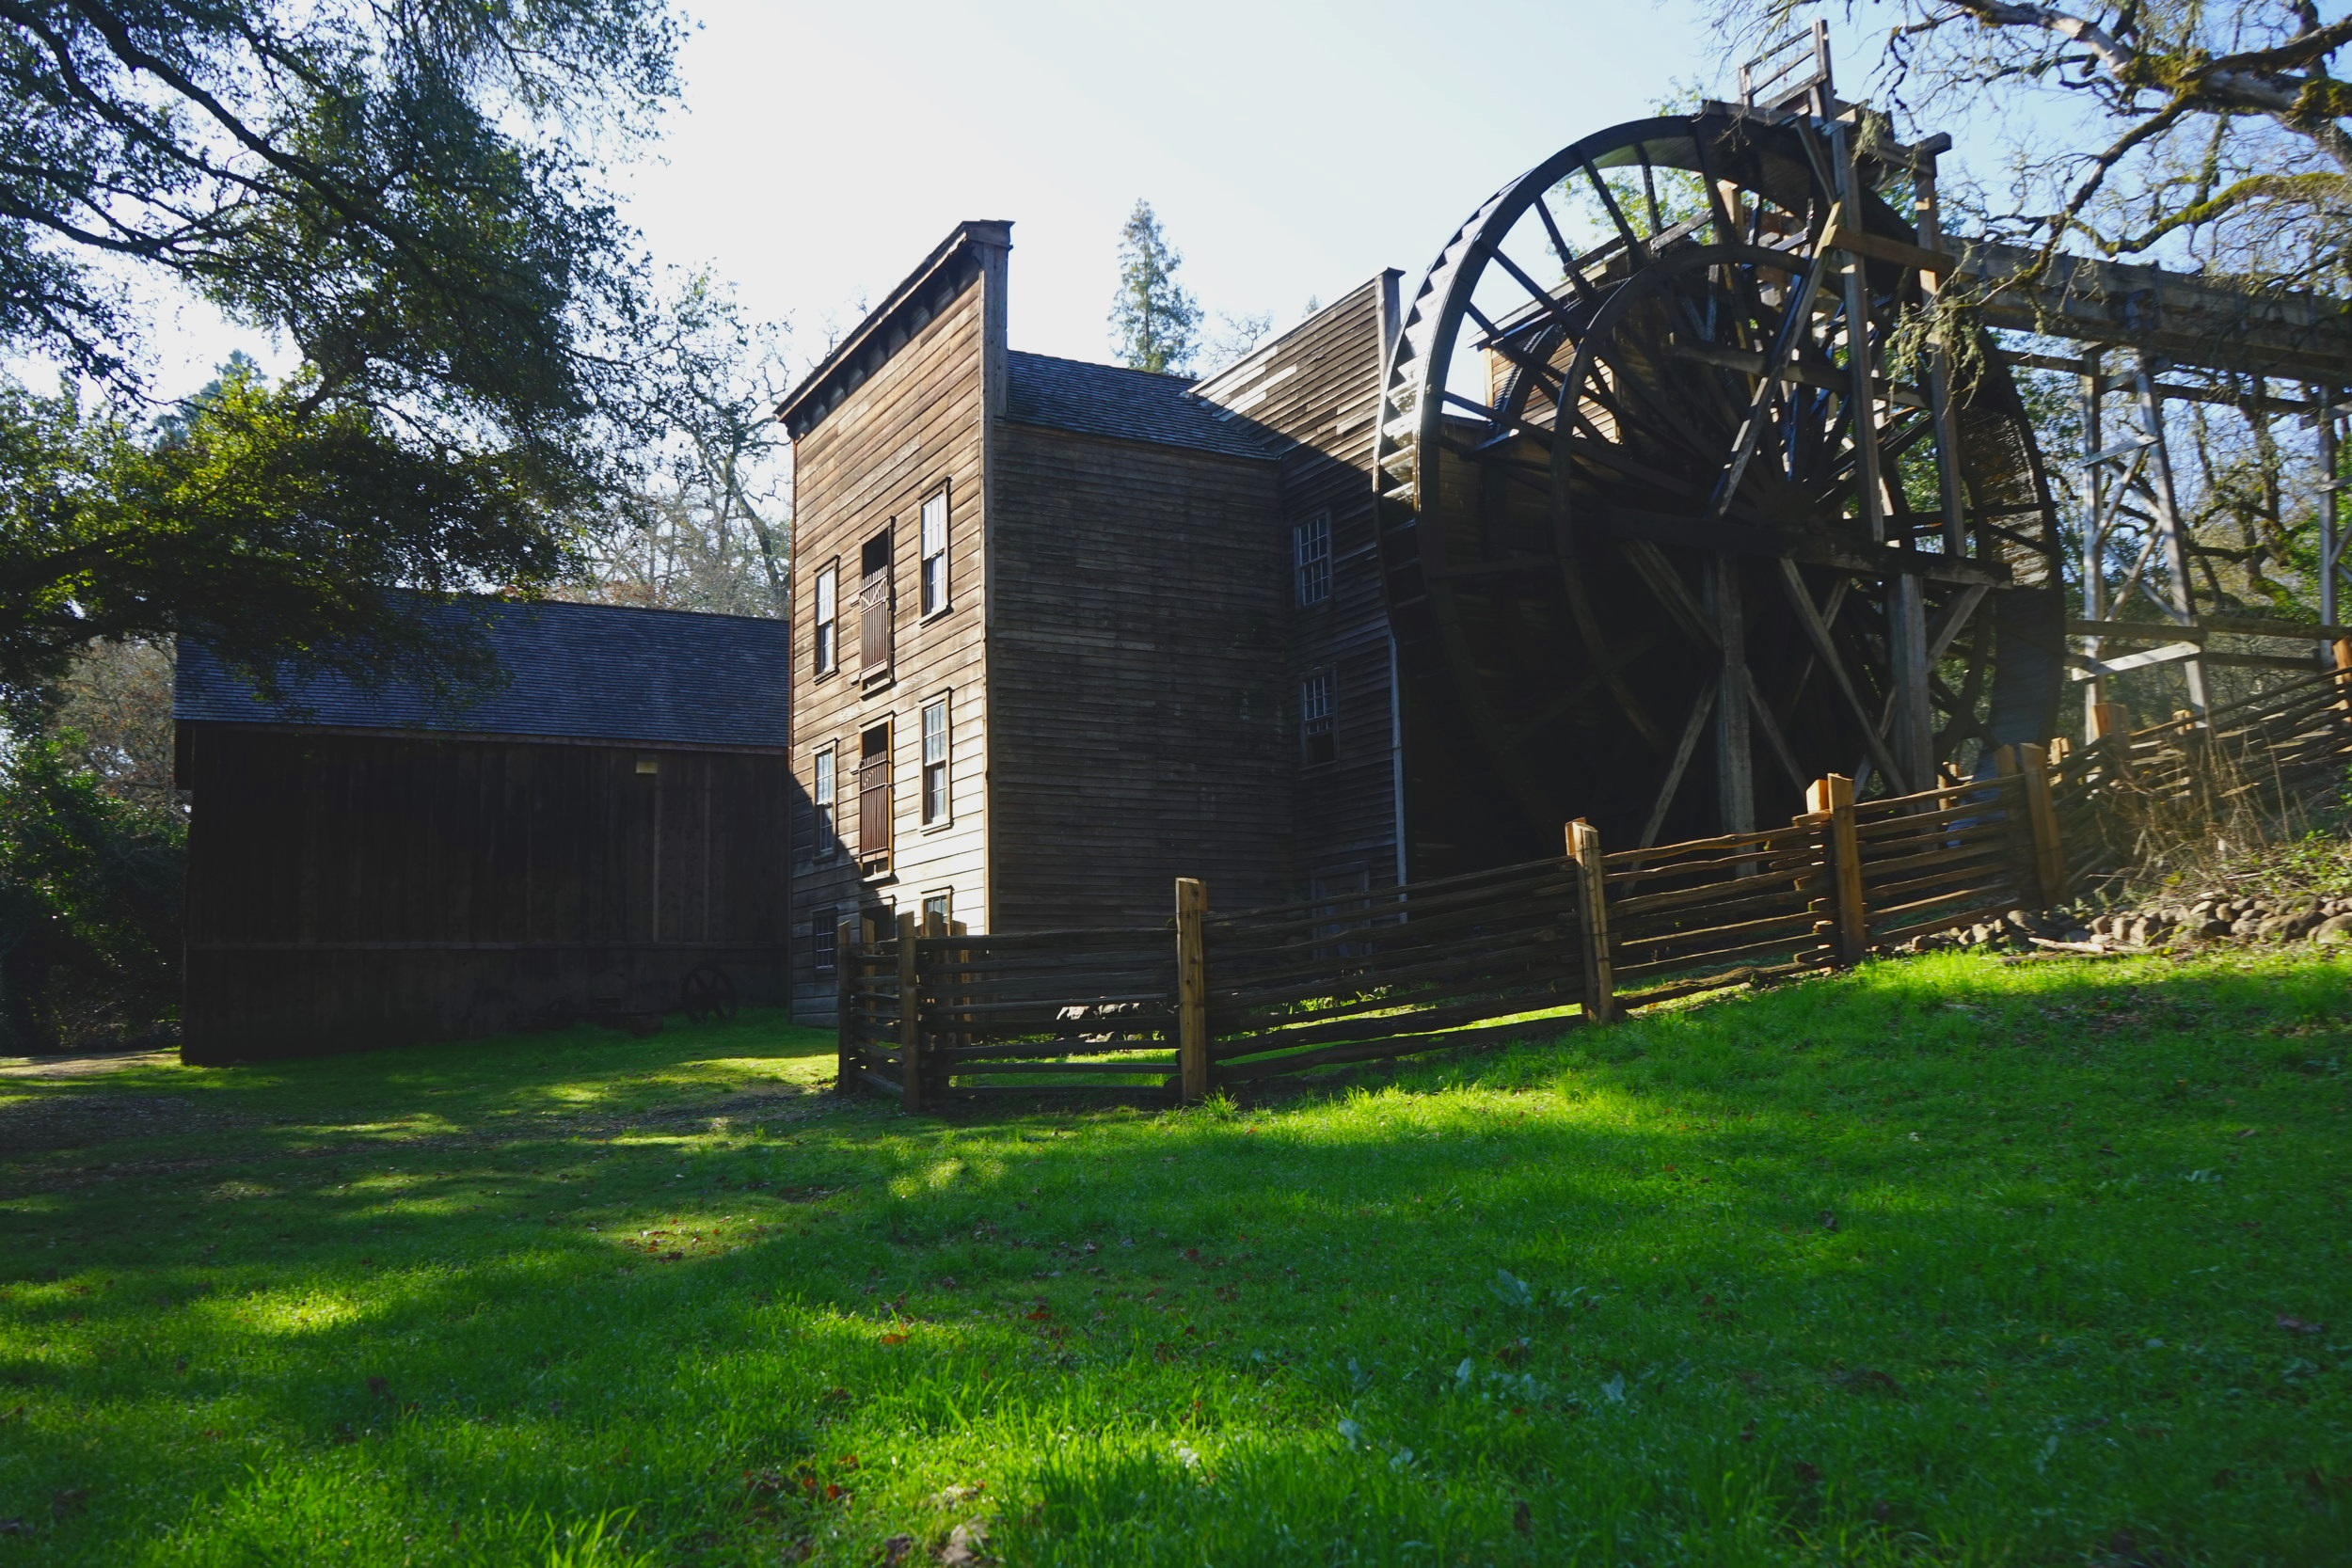 The Historic Bale Grist Mill